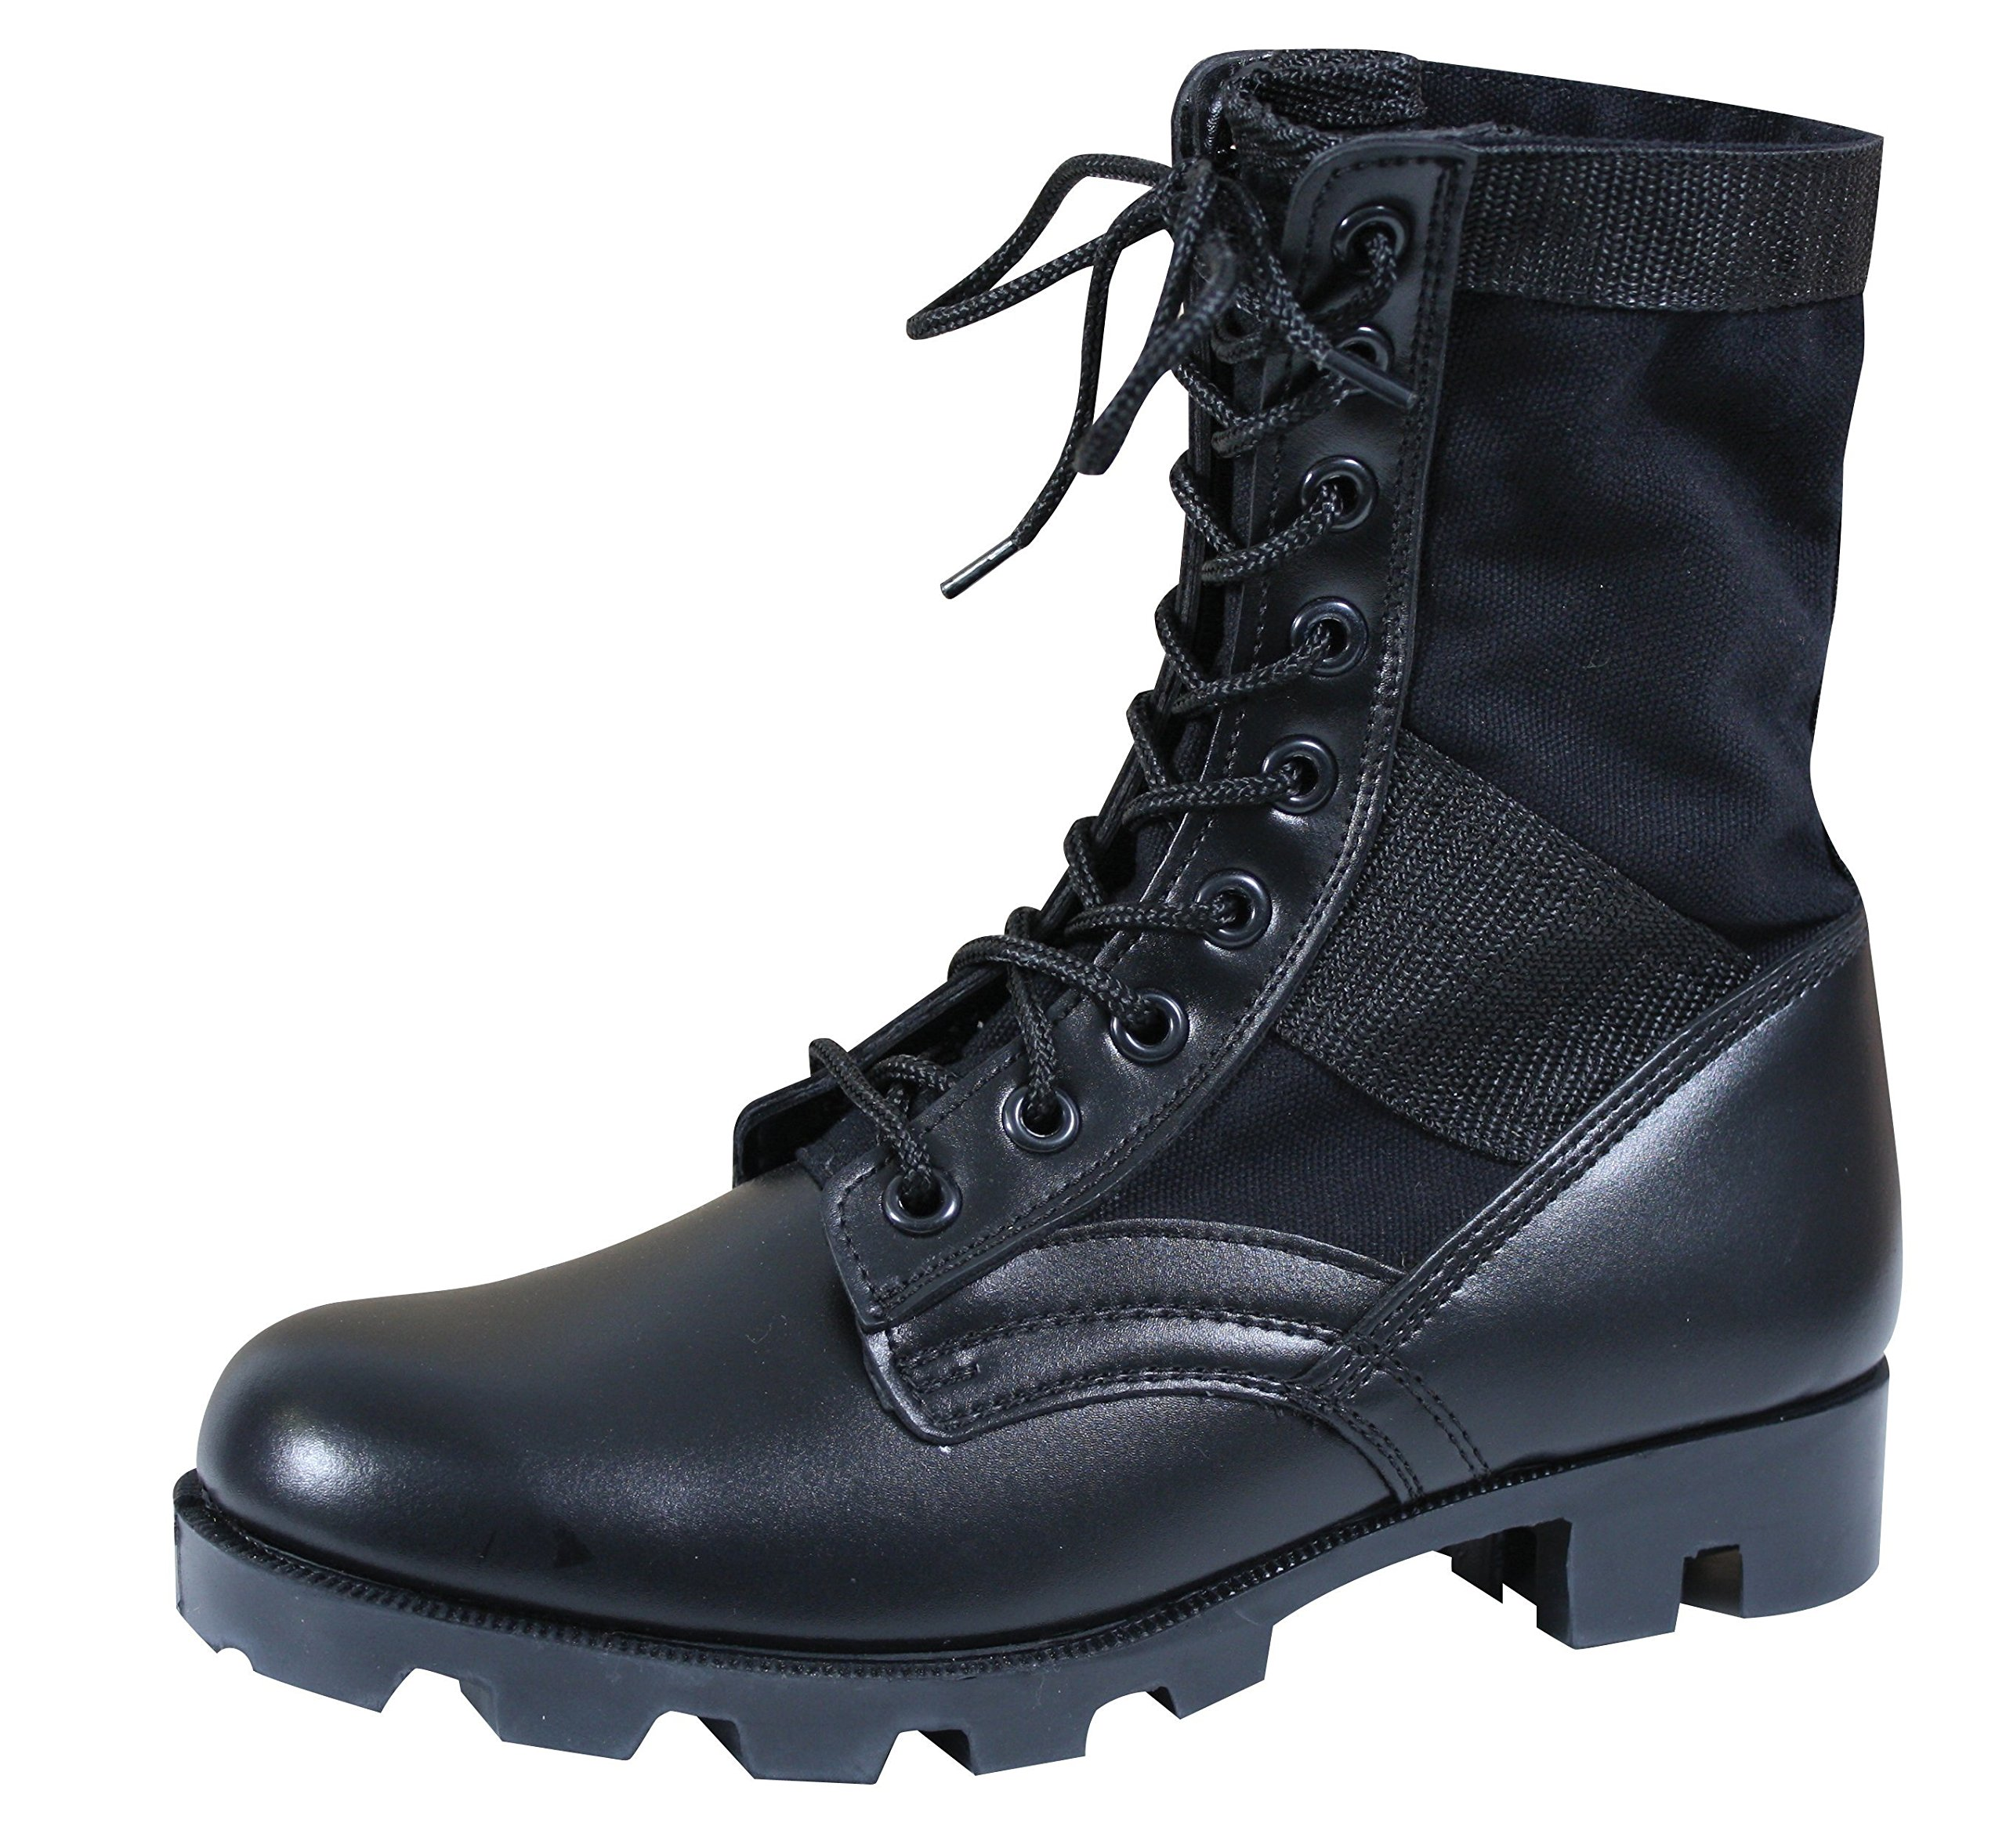 Ultra Force Jungle Boots,Black,Size 2R